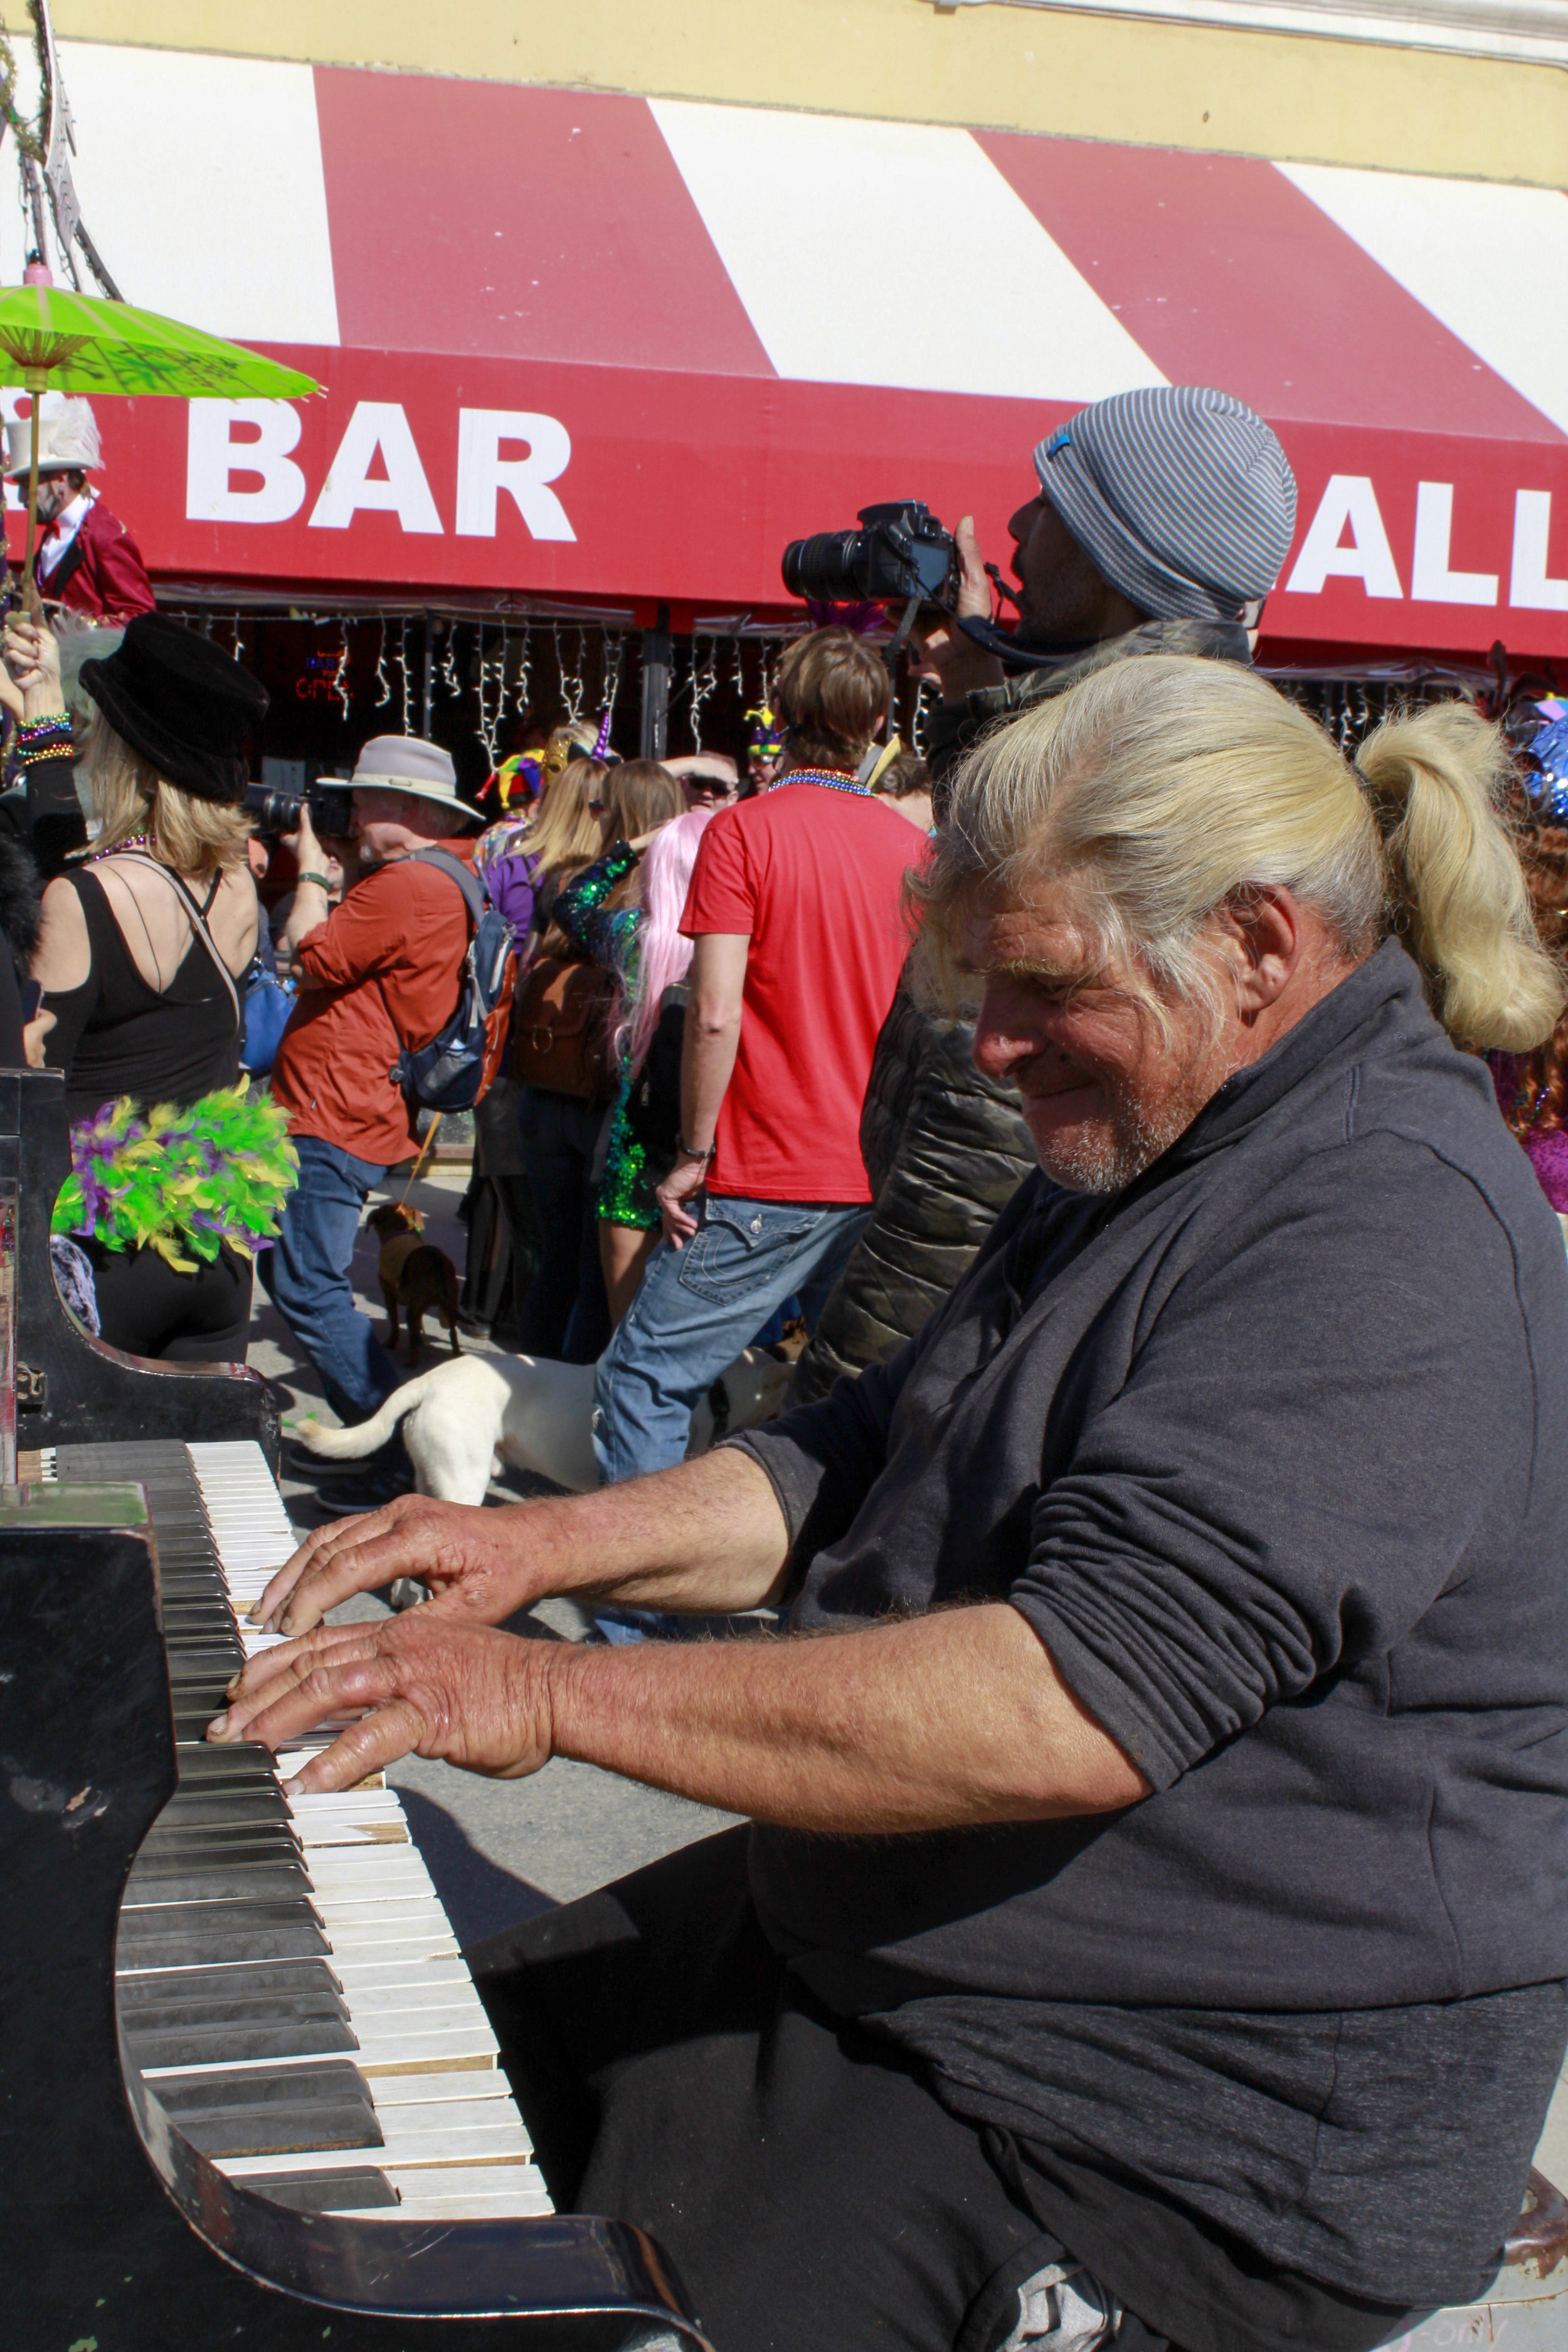 "Nathan Pino plays his piano on the Venice Beach boardwalk as the Venice Beach Mardi Gras parade floods past him on Feb 23, 2019 in Los Angeles, California. Nathan plays his Piano on the boardwalk every day, and the influx of people and instruments to play along to seemed to brighten his day. ""It's a nice birthday present,"" Says Nathan. Photo by Danica Creahan."